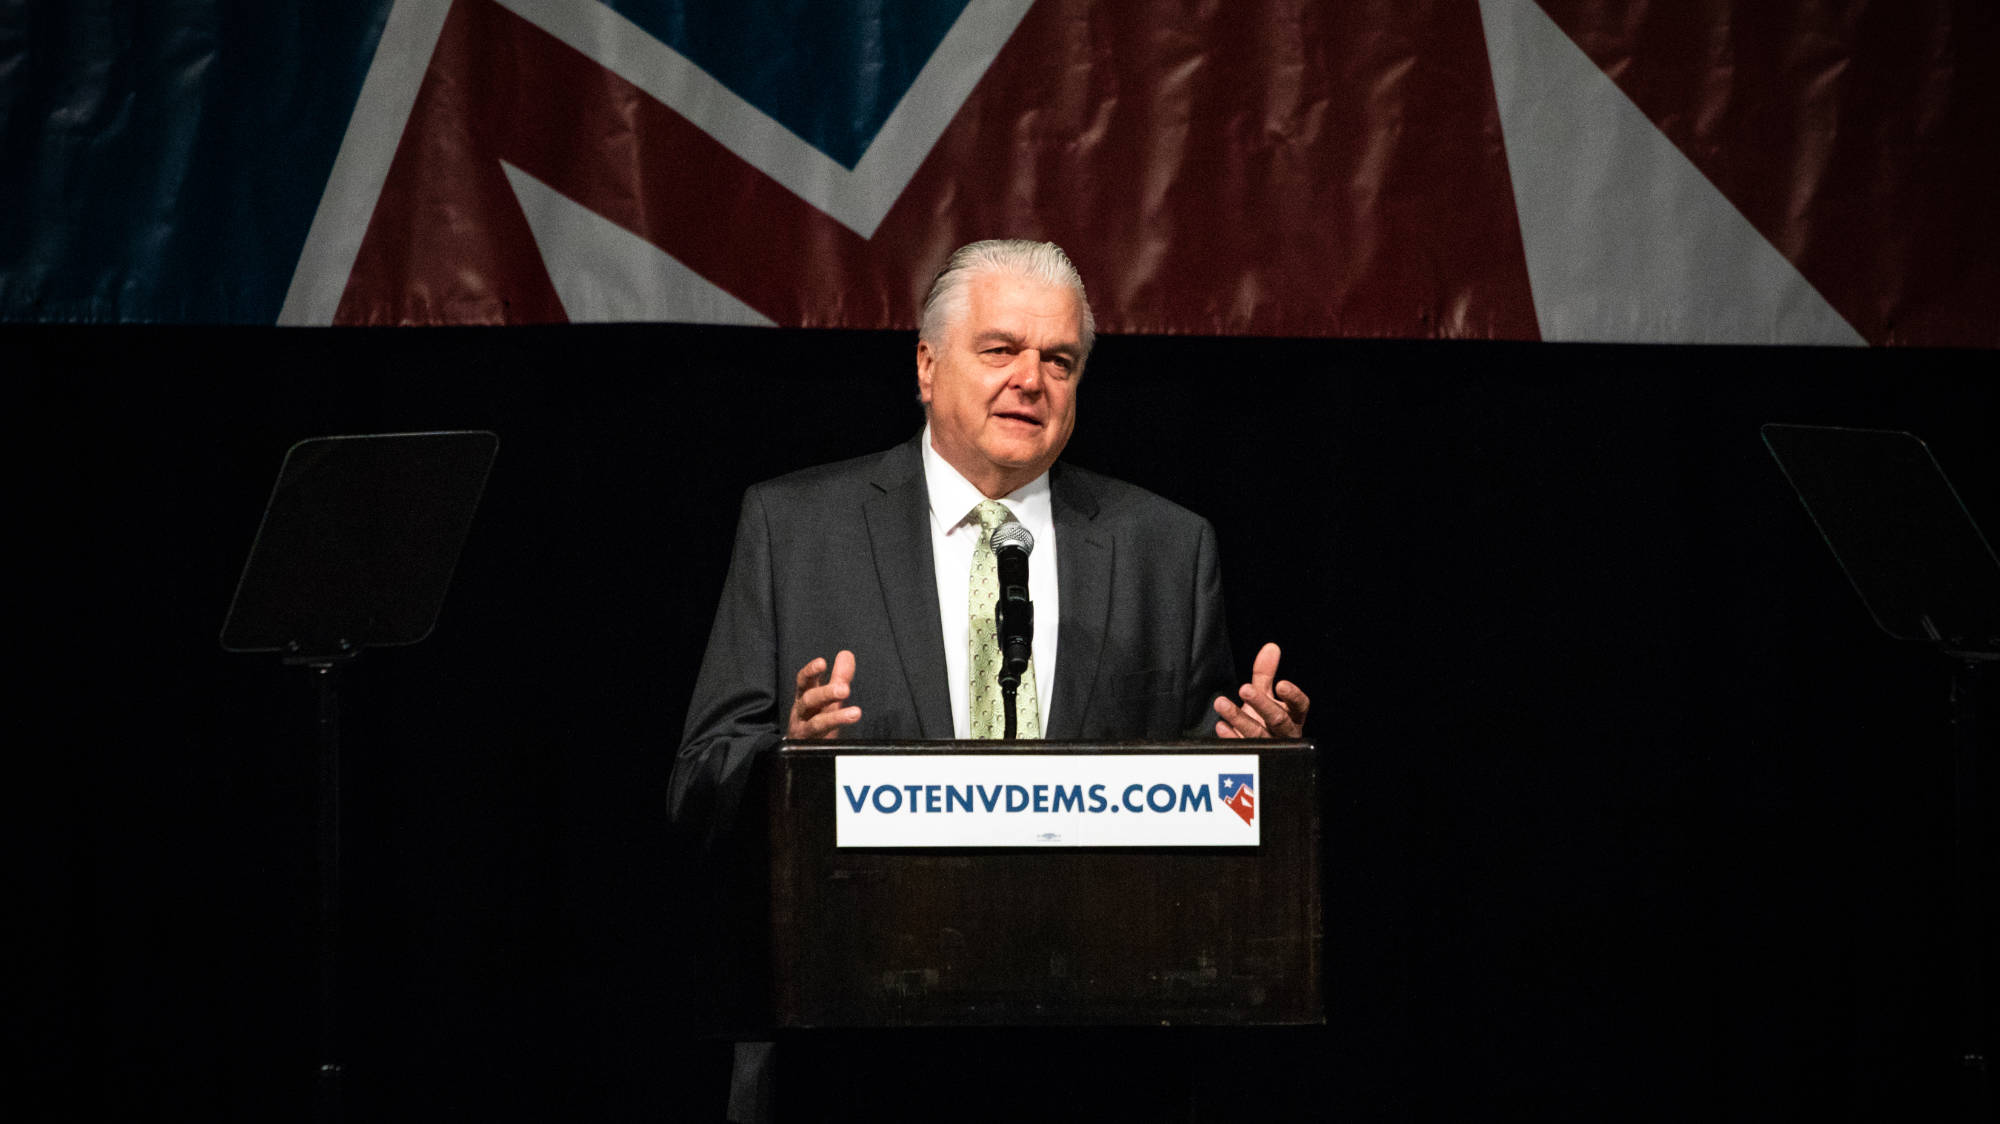 Steve Sisolak, Governor of Nevada